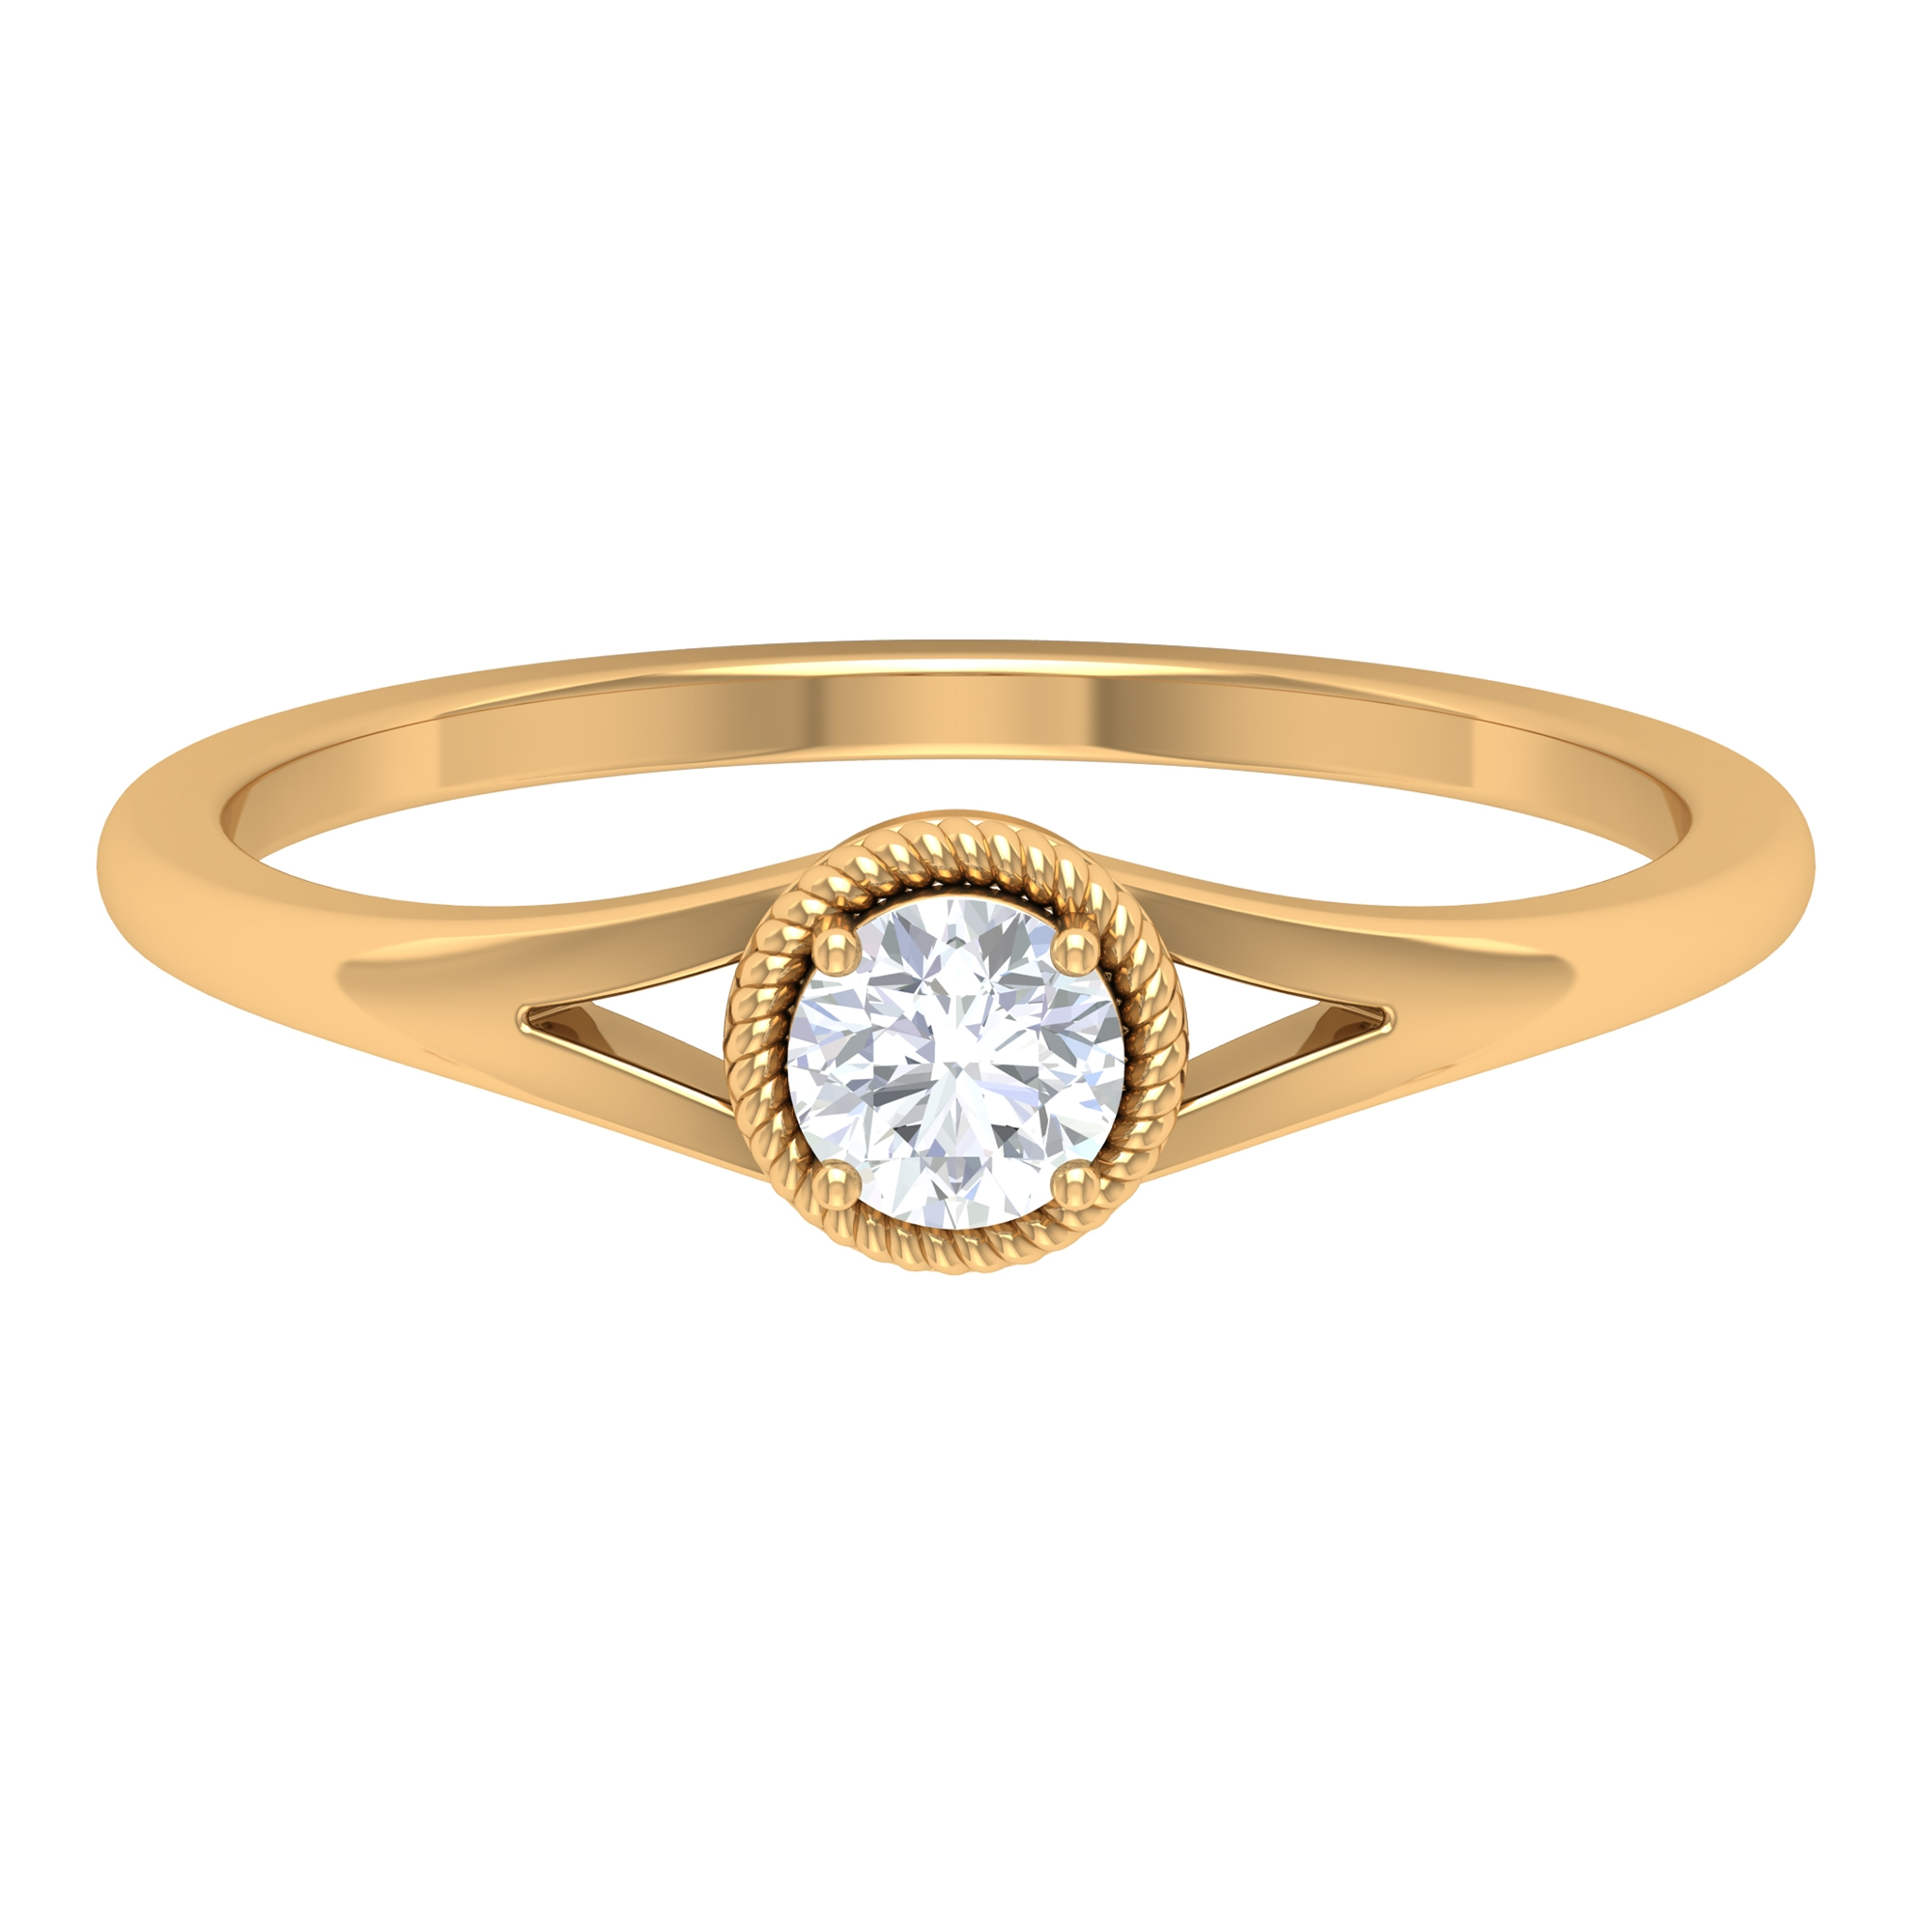 4 MM Round Cut Diamond Solitaire Ring in Prong Setting with Rope Frame and Split Shank